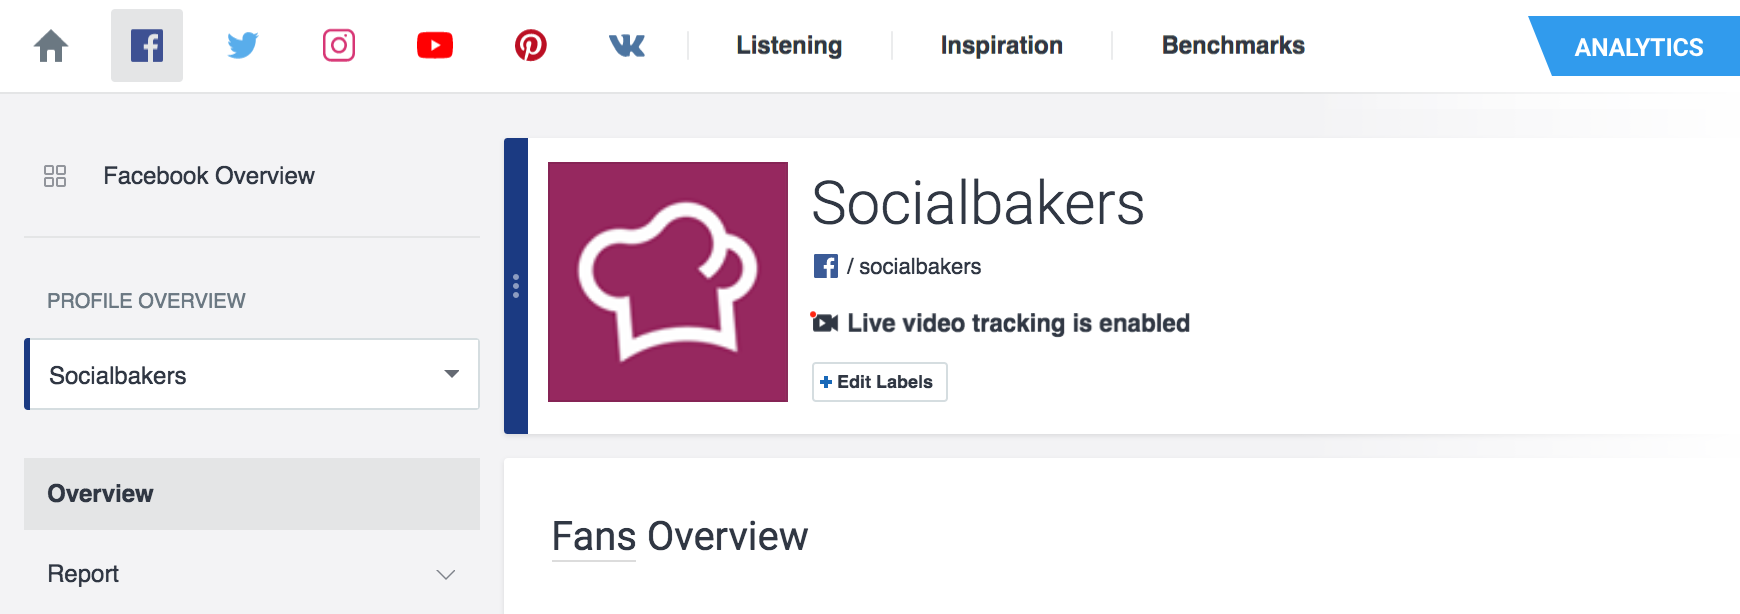 Socialbakers_Facebook_Video_Facebook_Profile_Overview_2x.png